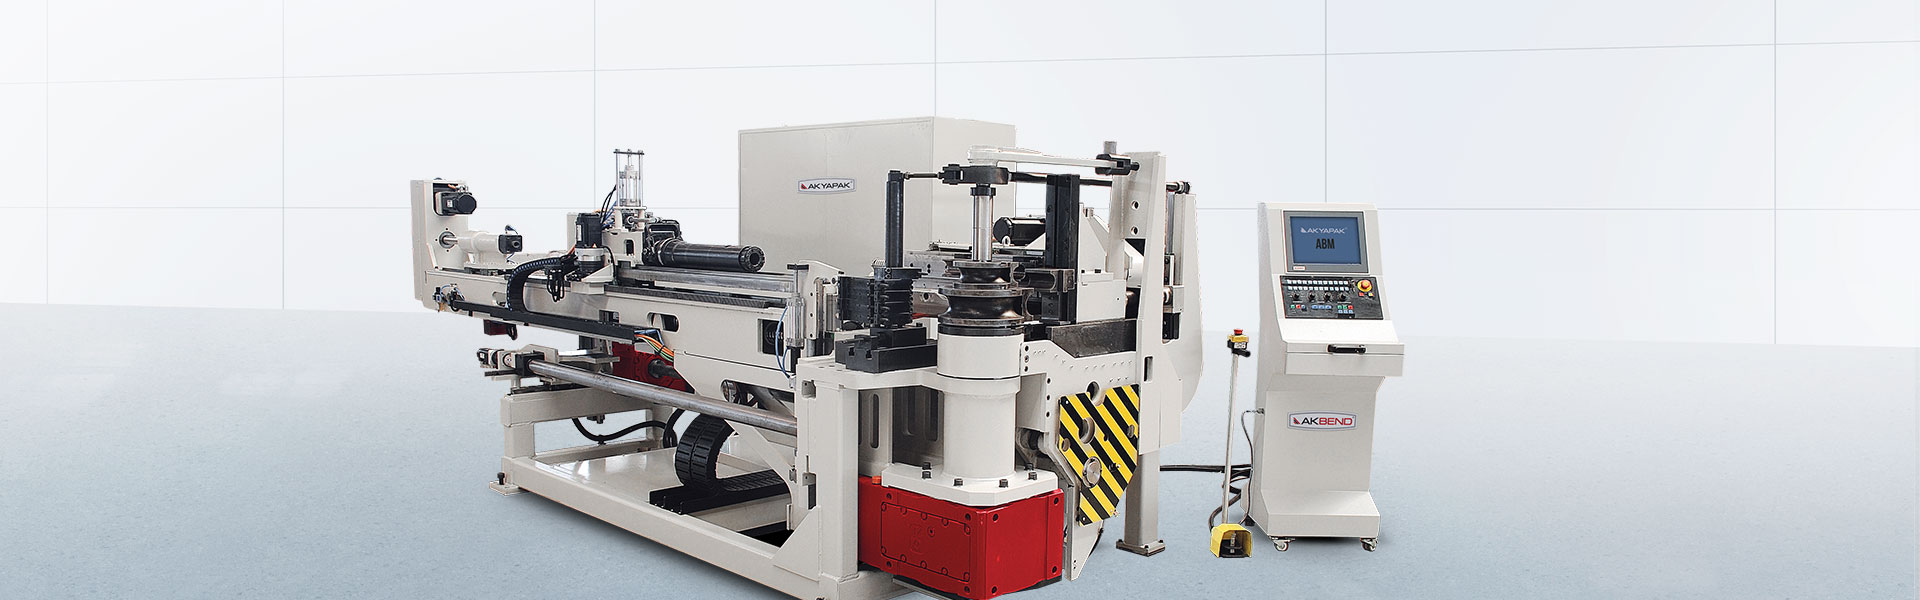 ABM E-80 All Electric Tube & Pipe Bending Machines